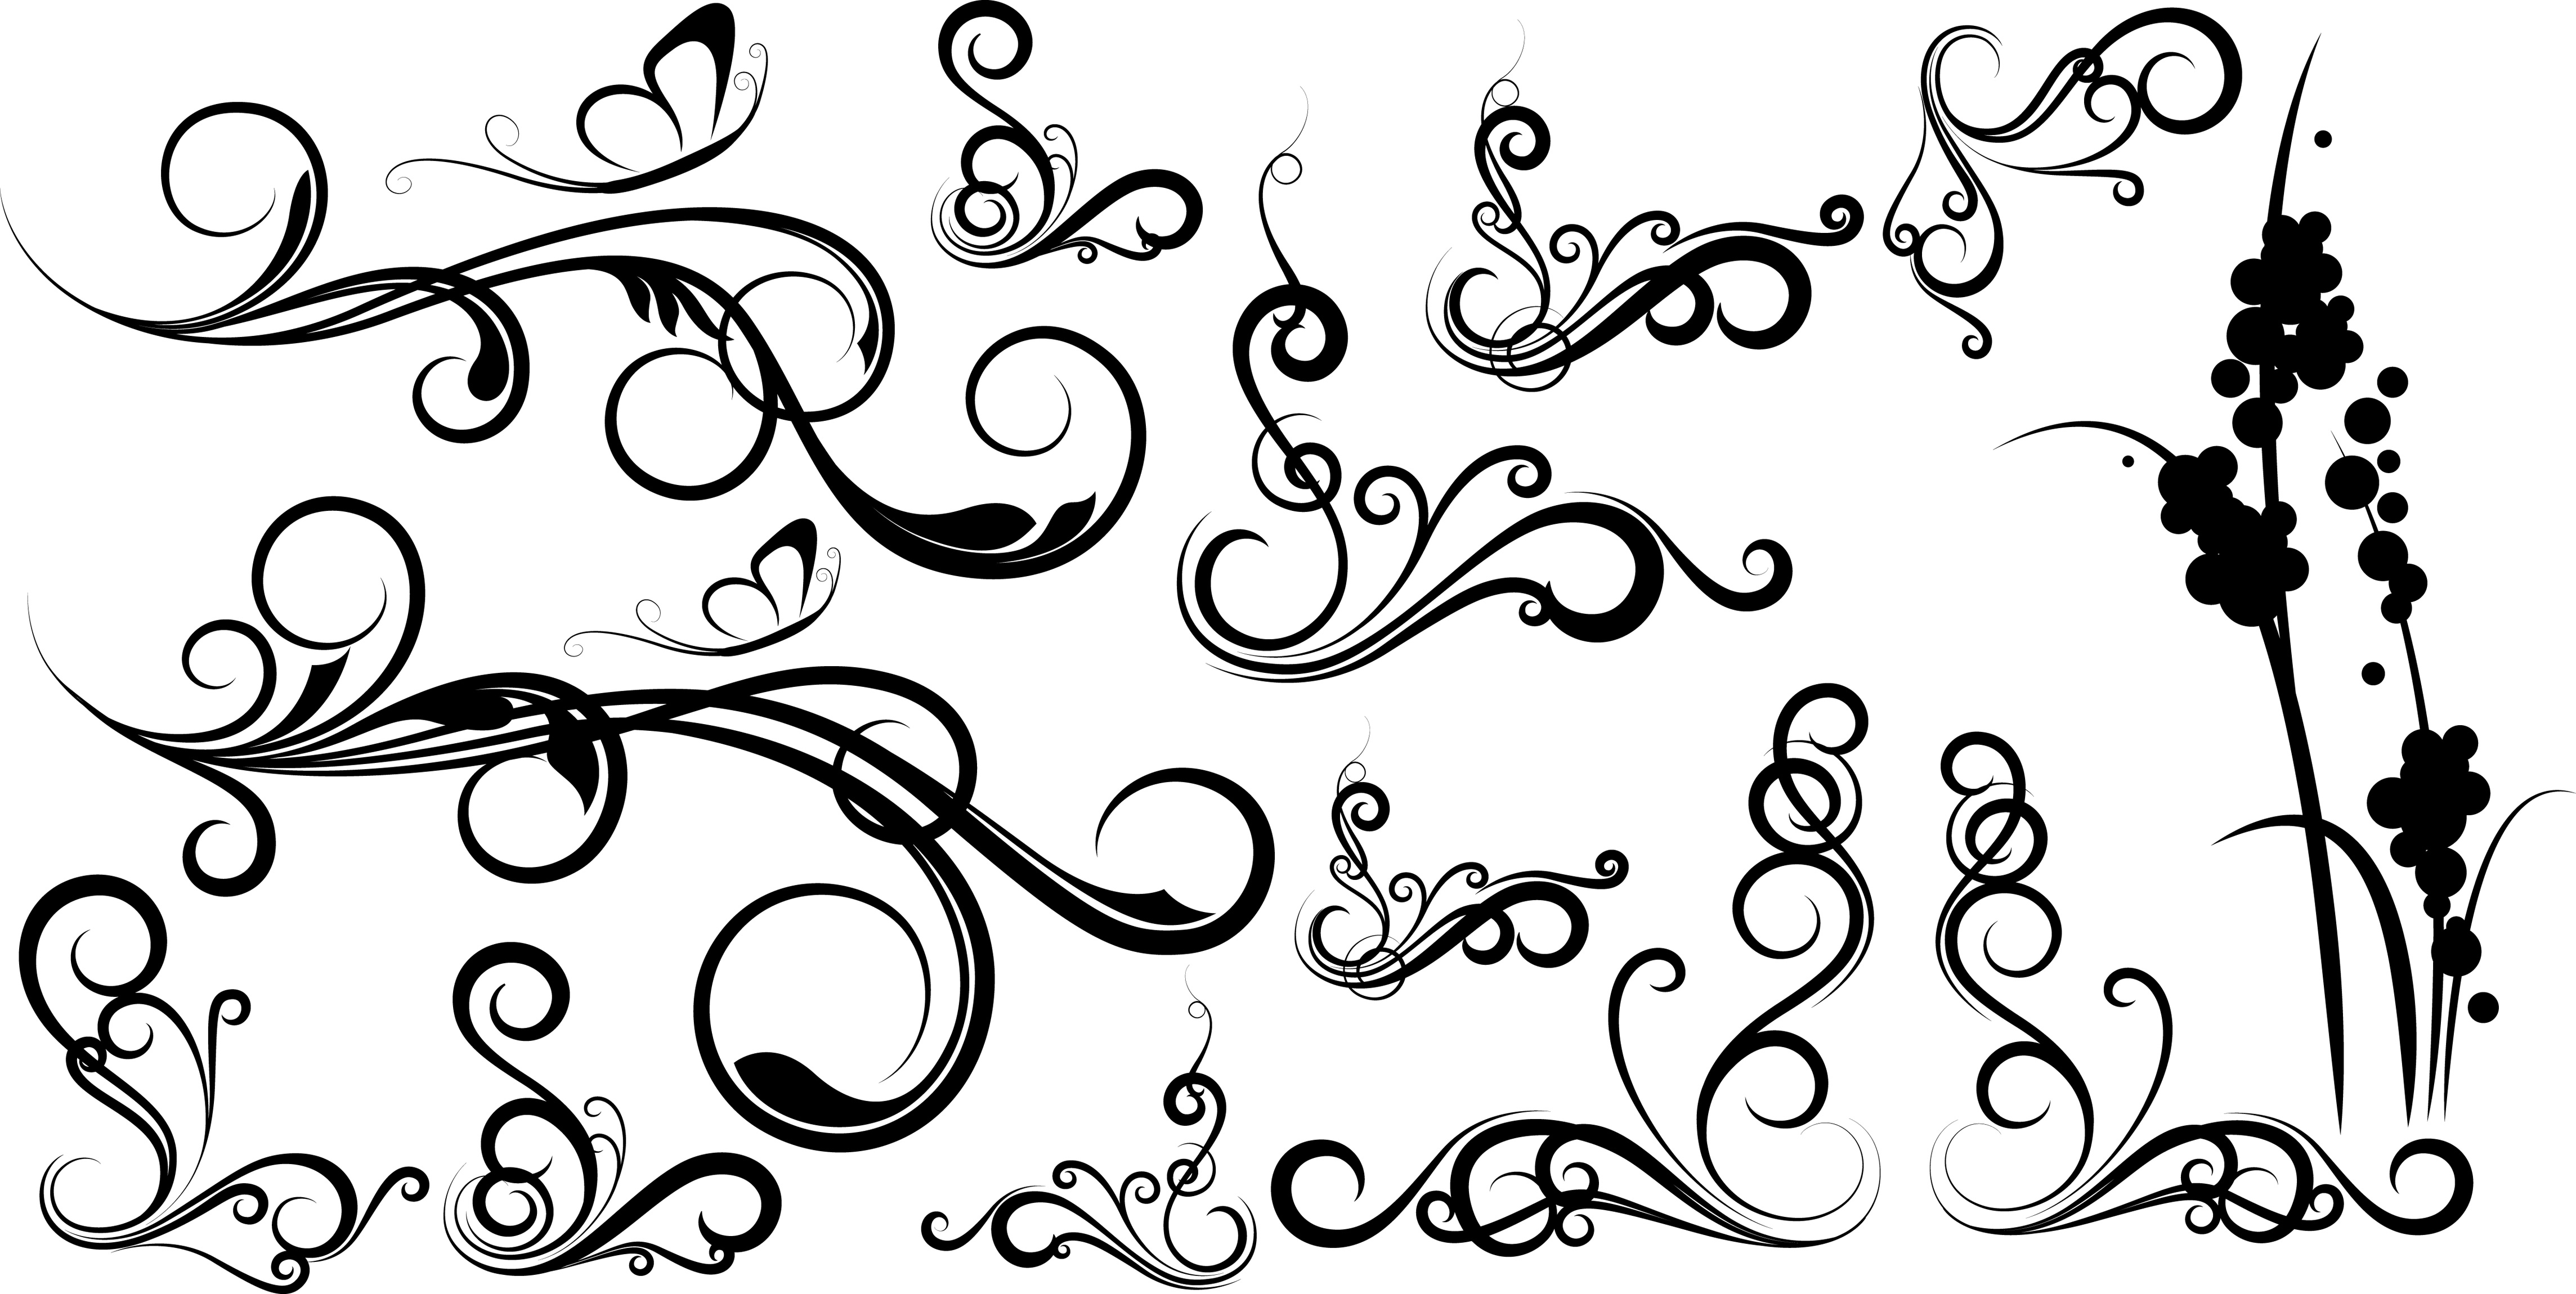 13 Free Photoshop Vector Banners Images Art